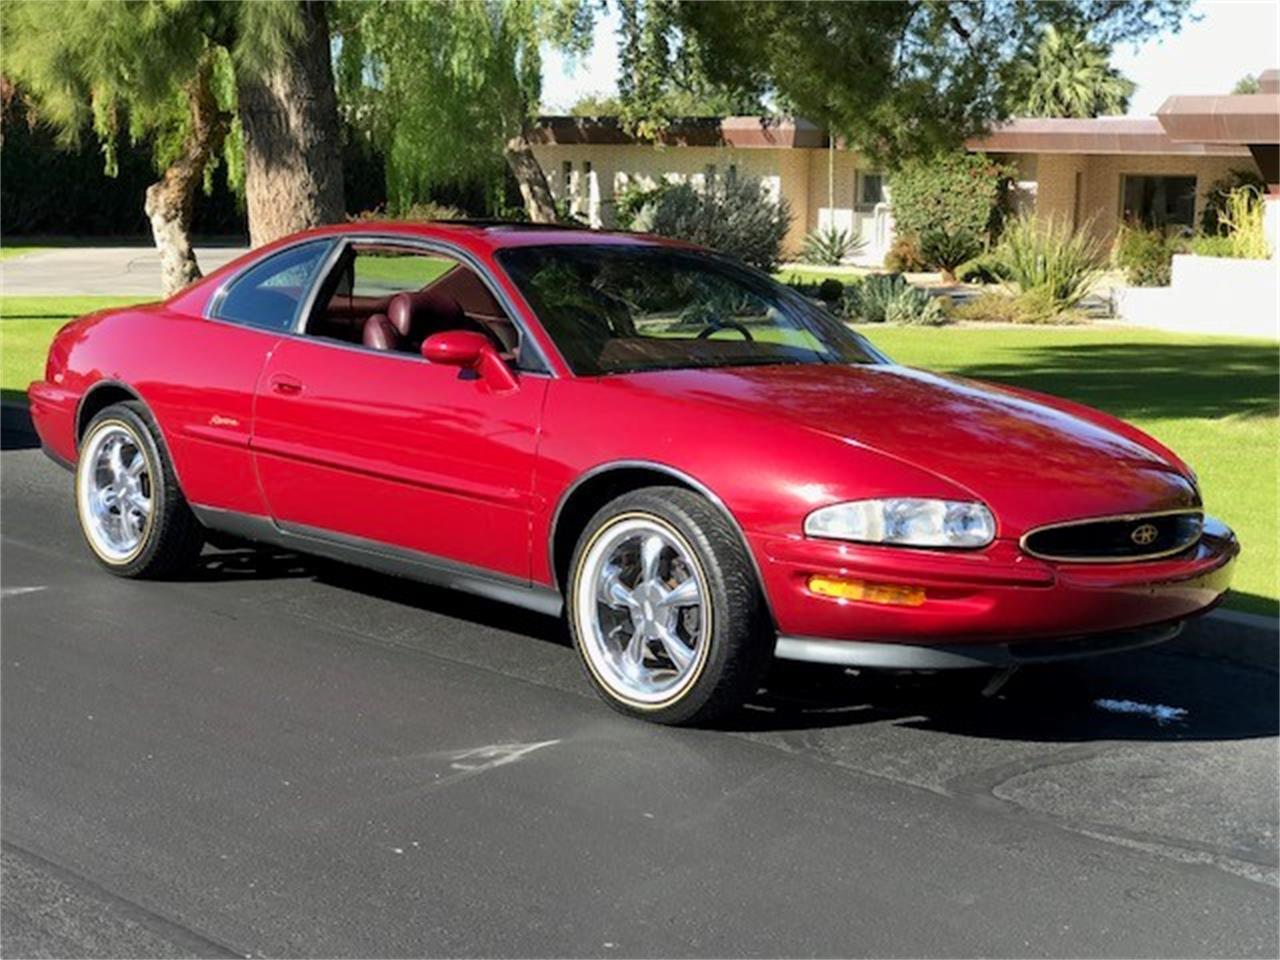 Large Picture of '96 Riviera located in Scottsdale Arizona Auction Vehicle - MOEE